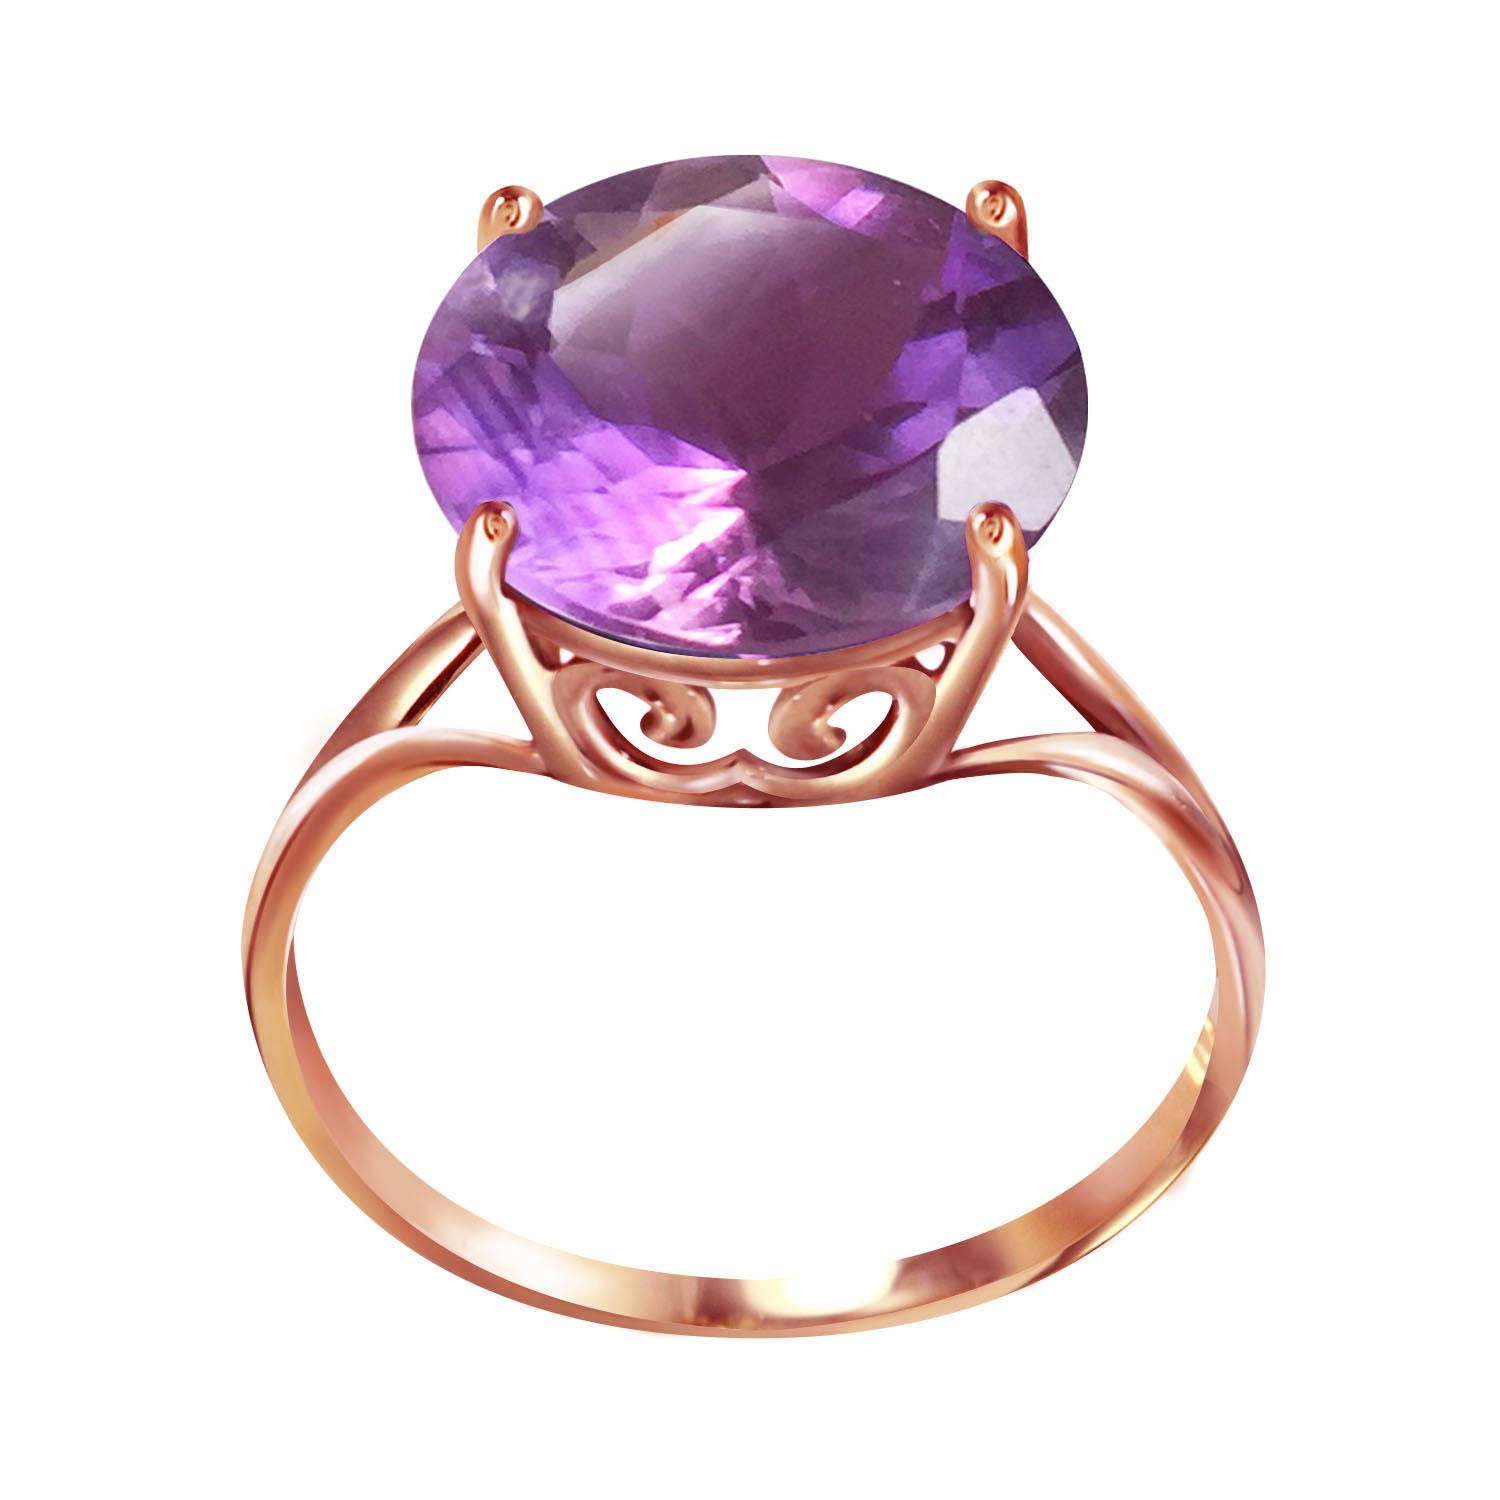 Round Cut Amethyst Ring 5.5 ct in 9ct Rose Gold